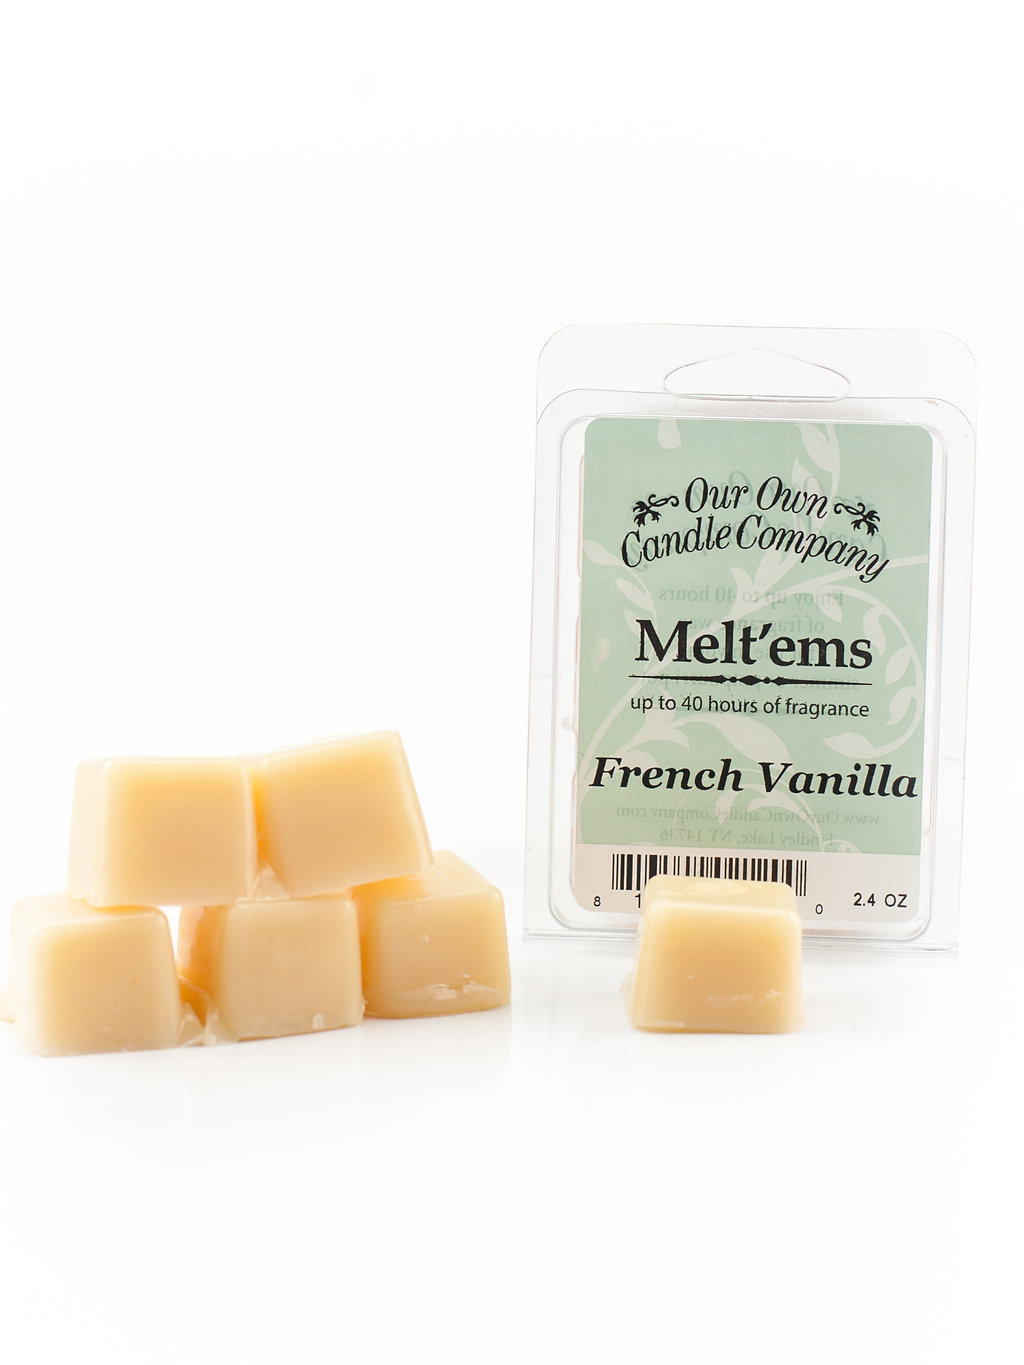 FRENCH VANILLA MELT 6 CUBE 2.4 OZ UPC# 813542021200